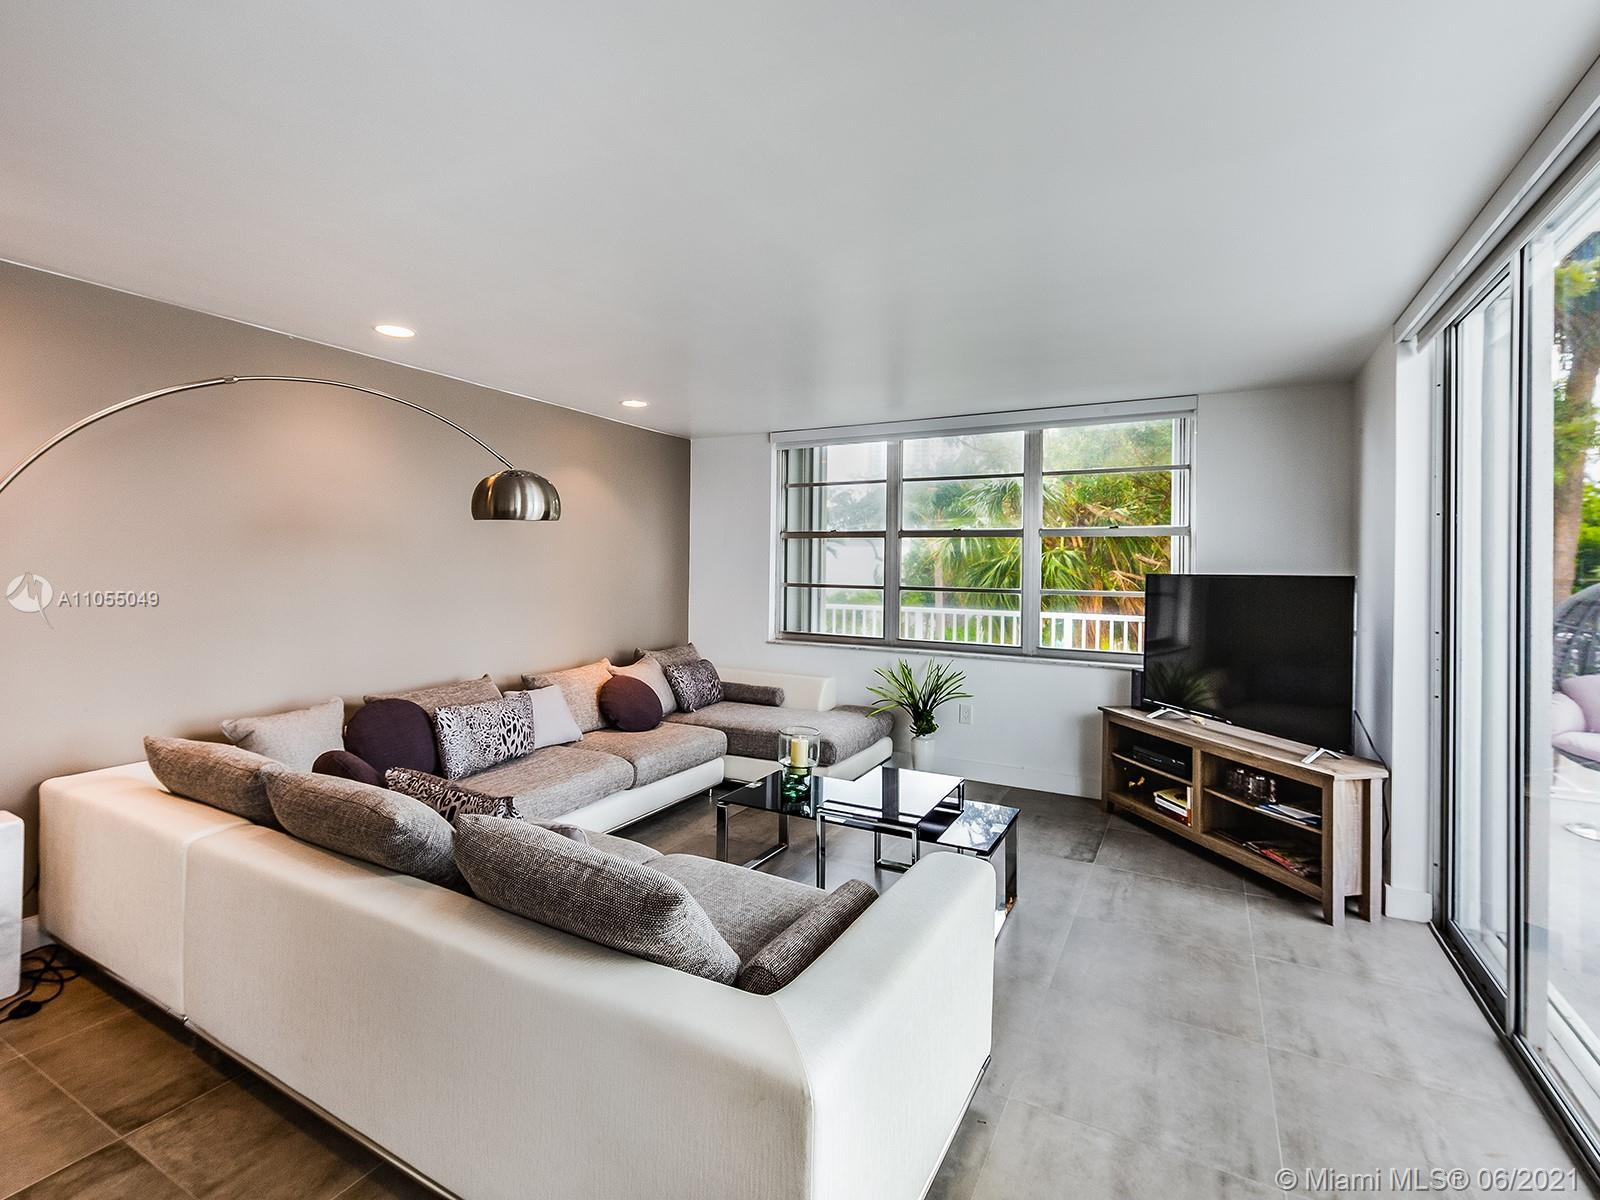 CASH ONLY!!! Great for investors. 2bed/2bath + Den with spectacular bay view, spacious and modern co